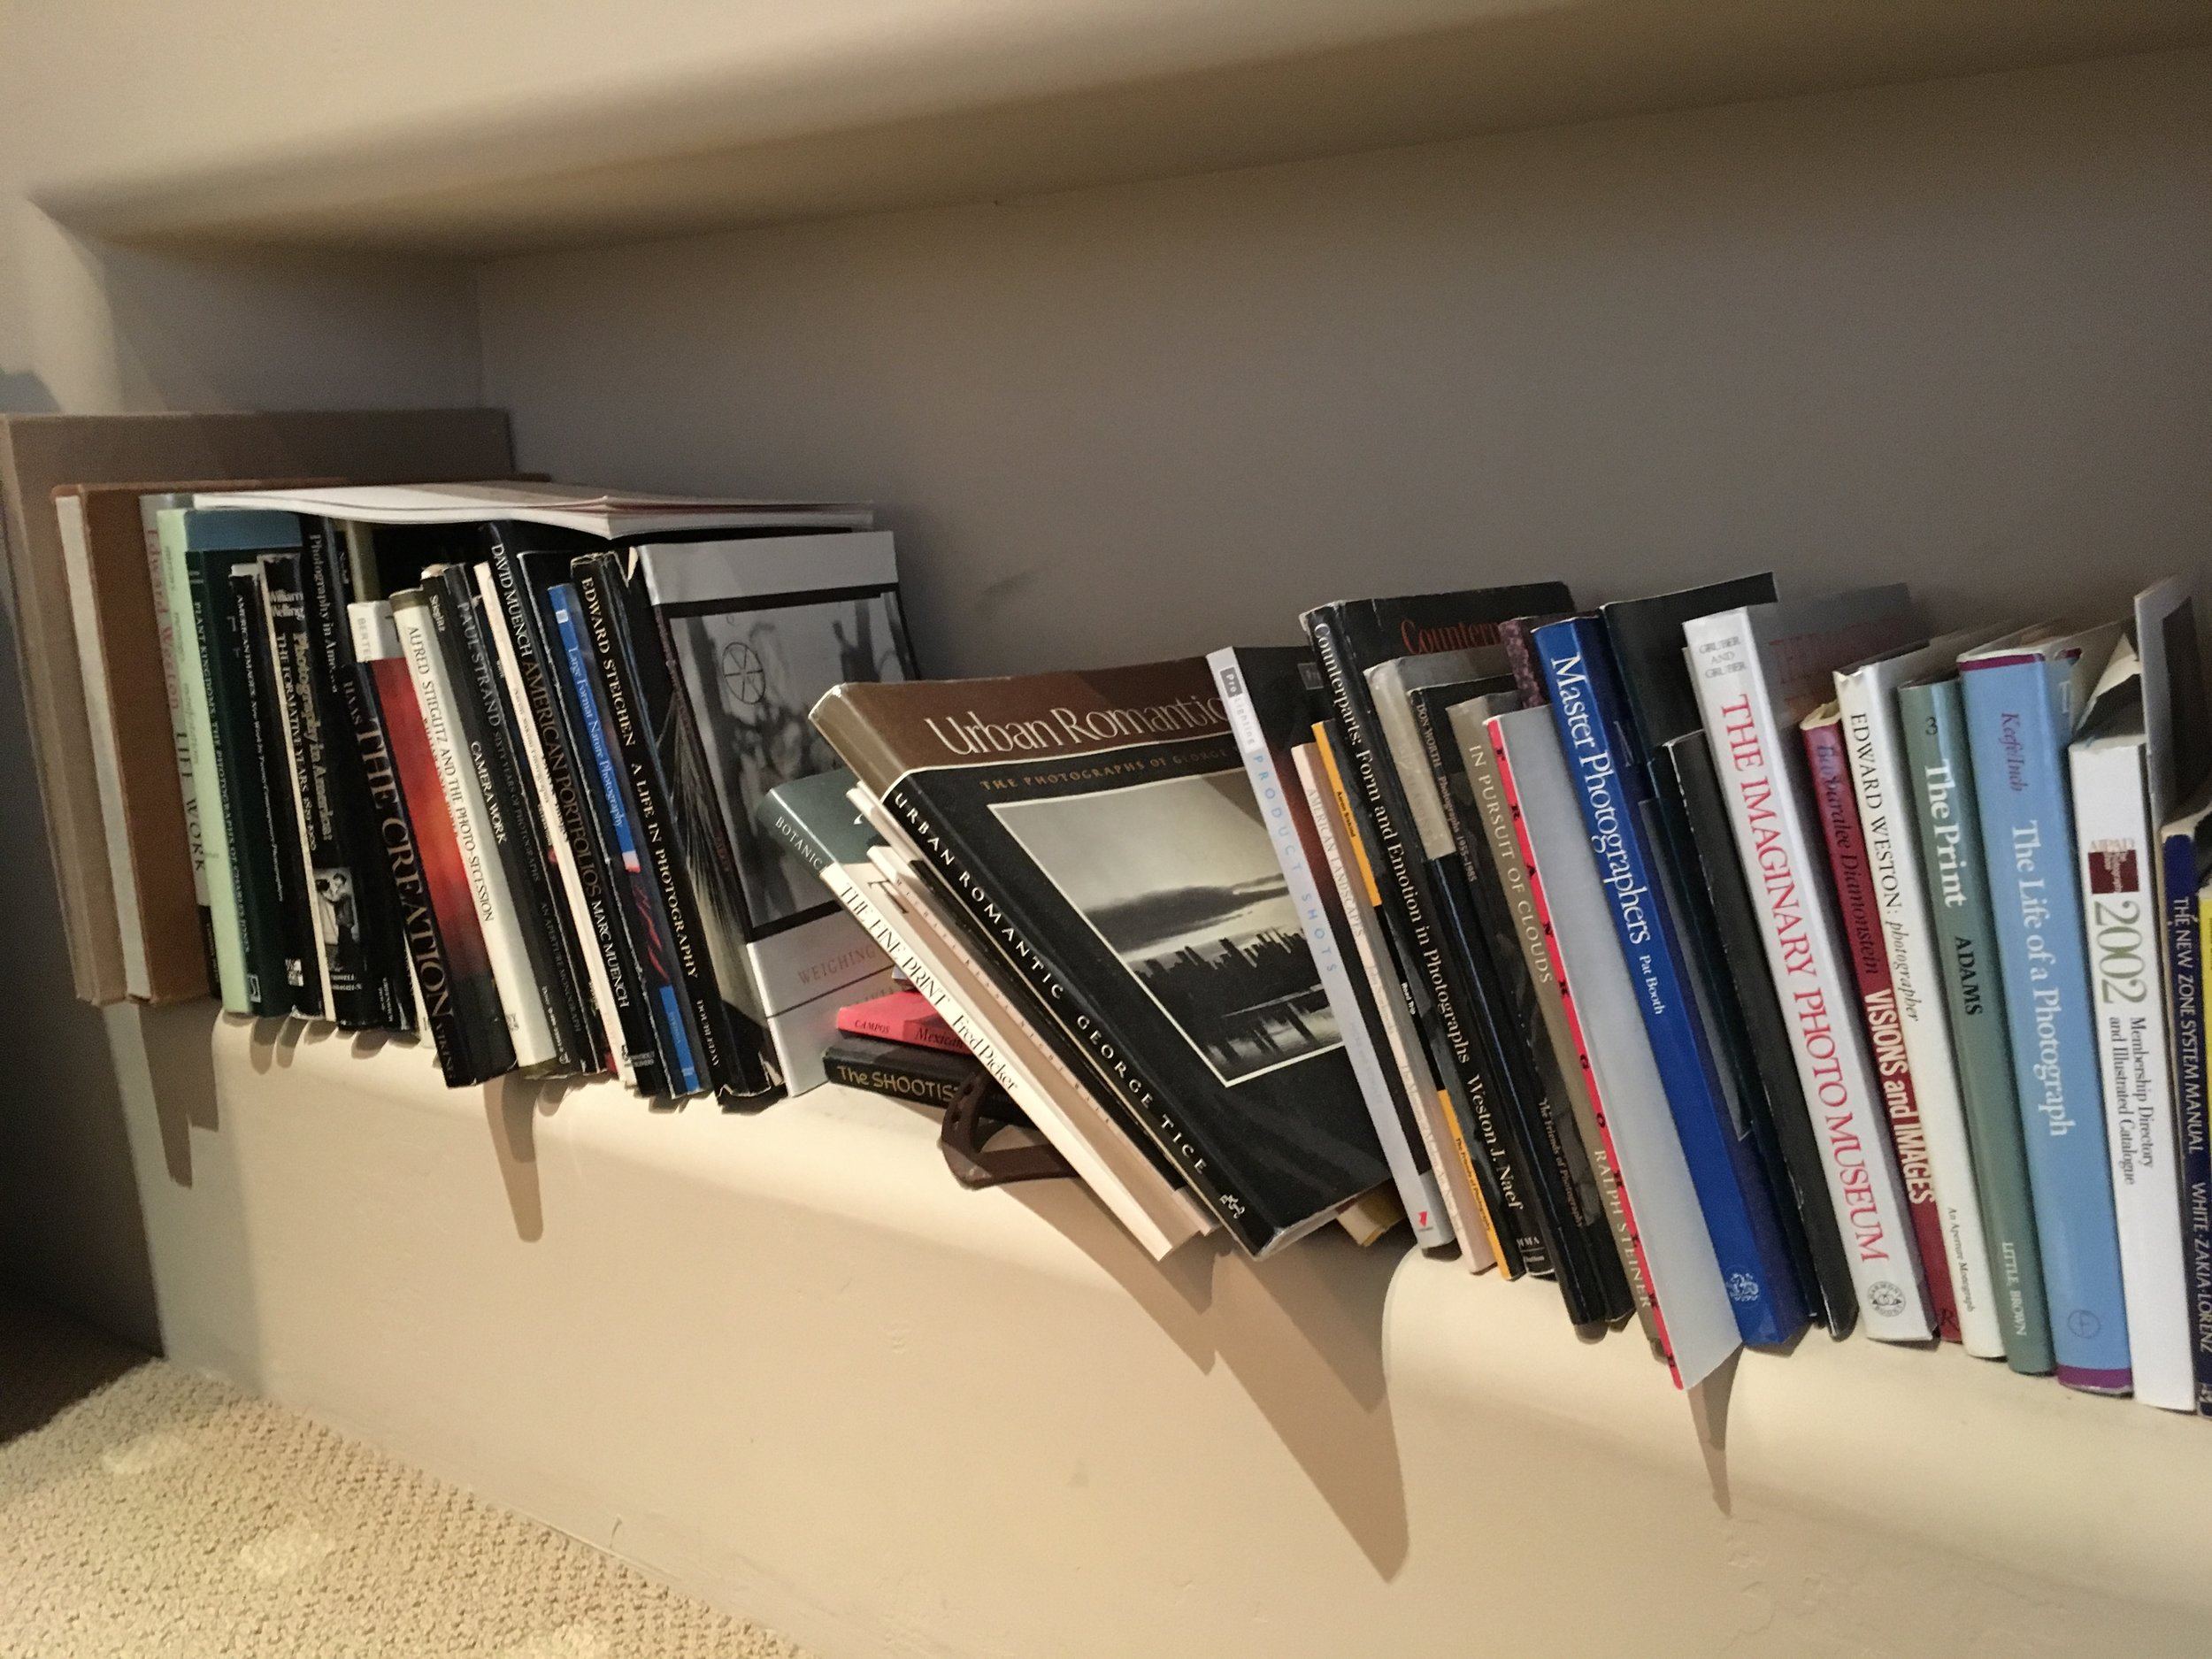 Richard M. Coda 's slanted shelf